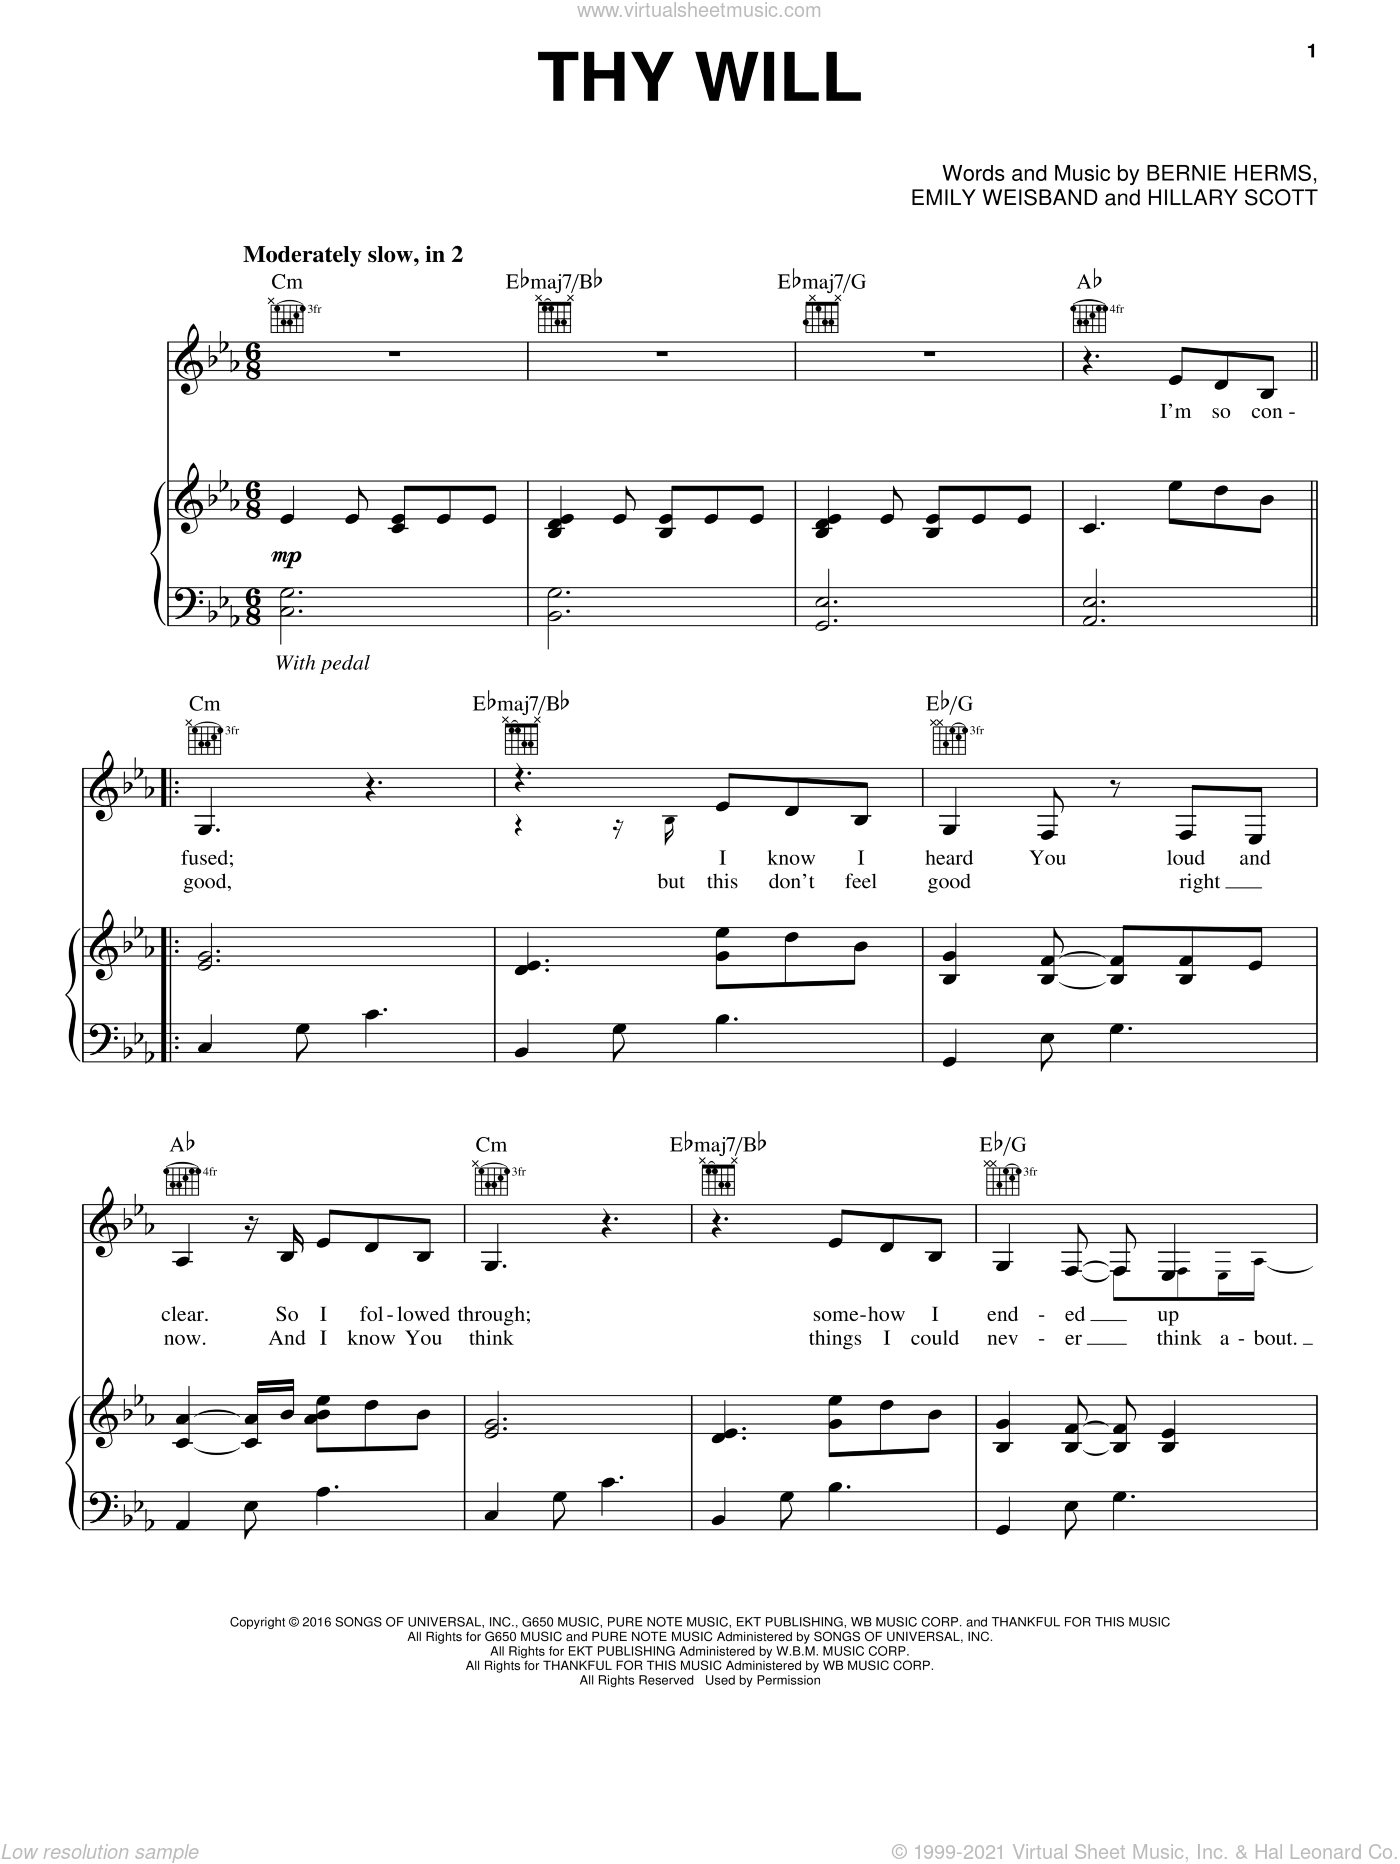 Thy Will sheet music for voice, piano or guitar by Hillary Scott & The Scott Family, Bernie Herms, Emily Weisband and Hillary Scott, intermediate skill level